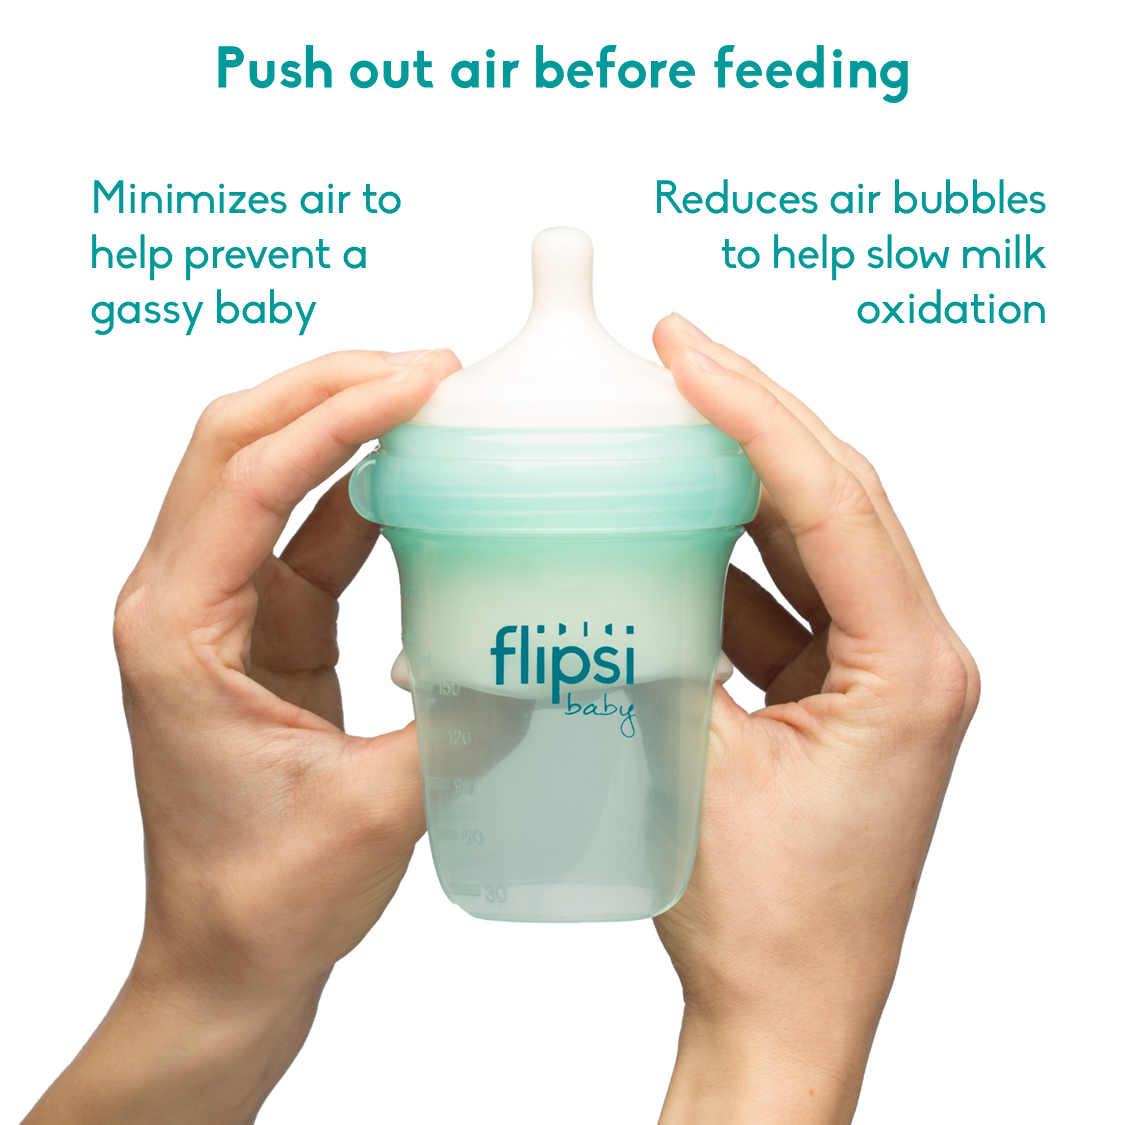 Flipsi Silicone Colic Reducing Baby Bottle